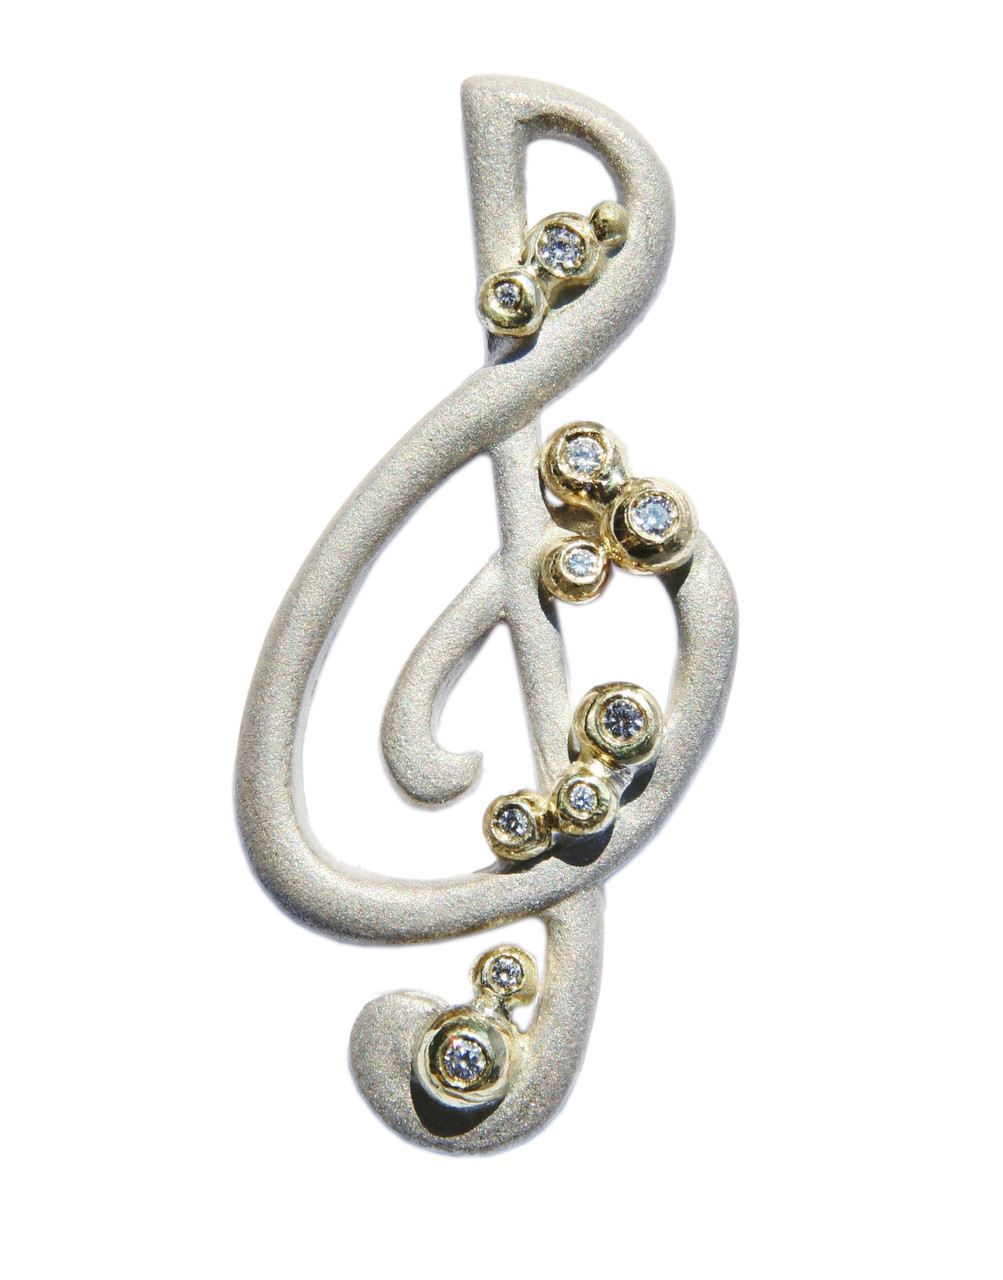 Treble clef pendant sterling silver with 18k gold dots of diamonds treble clef pendant sterling silver with solid 18k gold dots of diamonds aloadofball Images